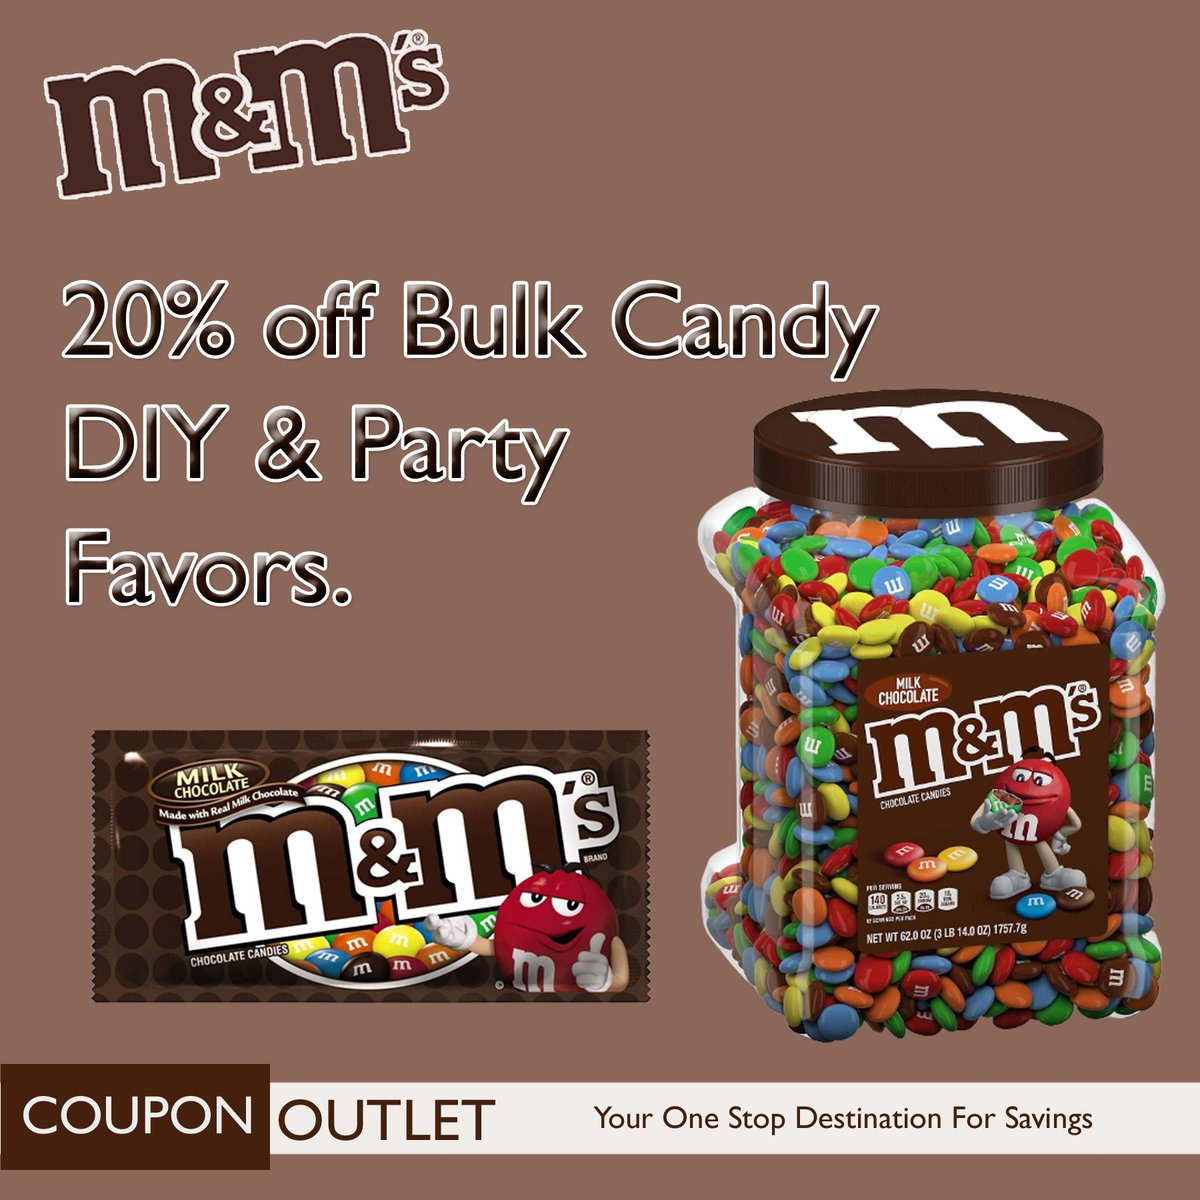 Make it a sweet celebration with 20% off Bulk Candy DIY and Party Favors from M&M'S.  #couponoutlet #coupons #mms #celebrate #party #candy #yum #celebration